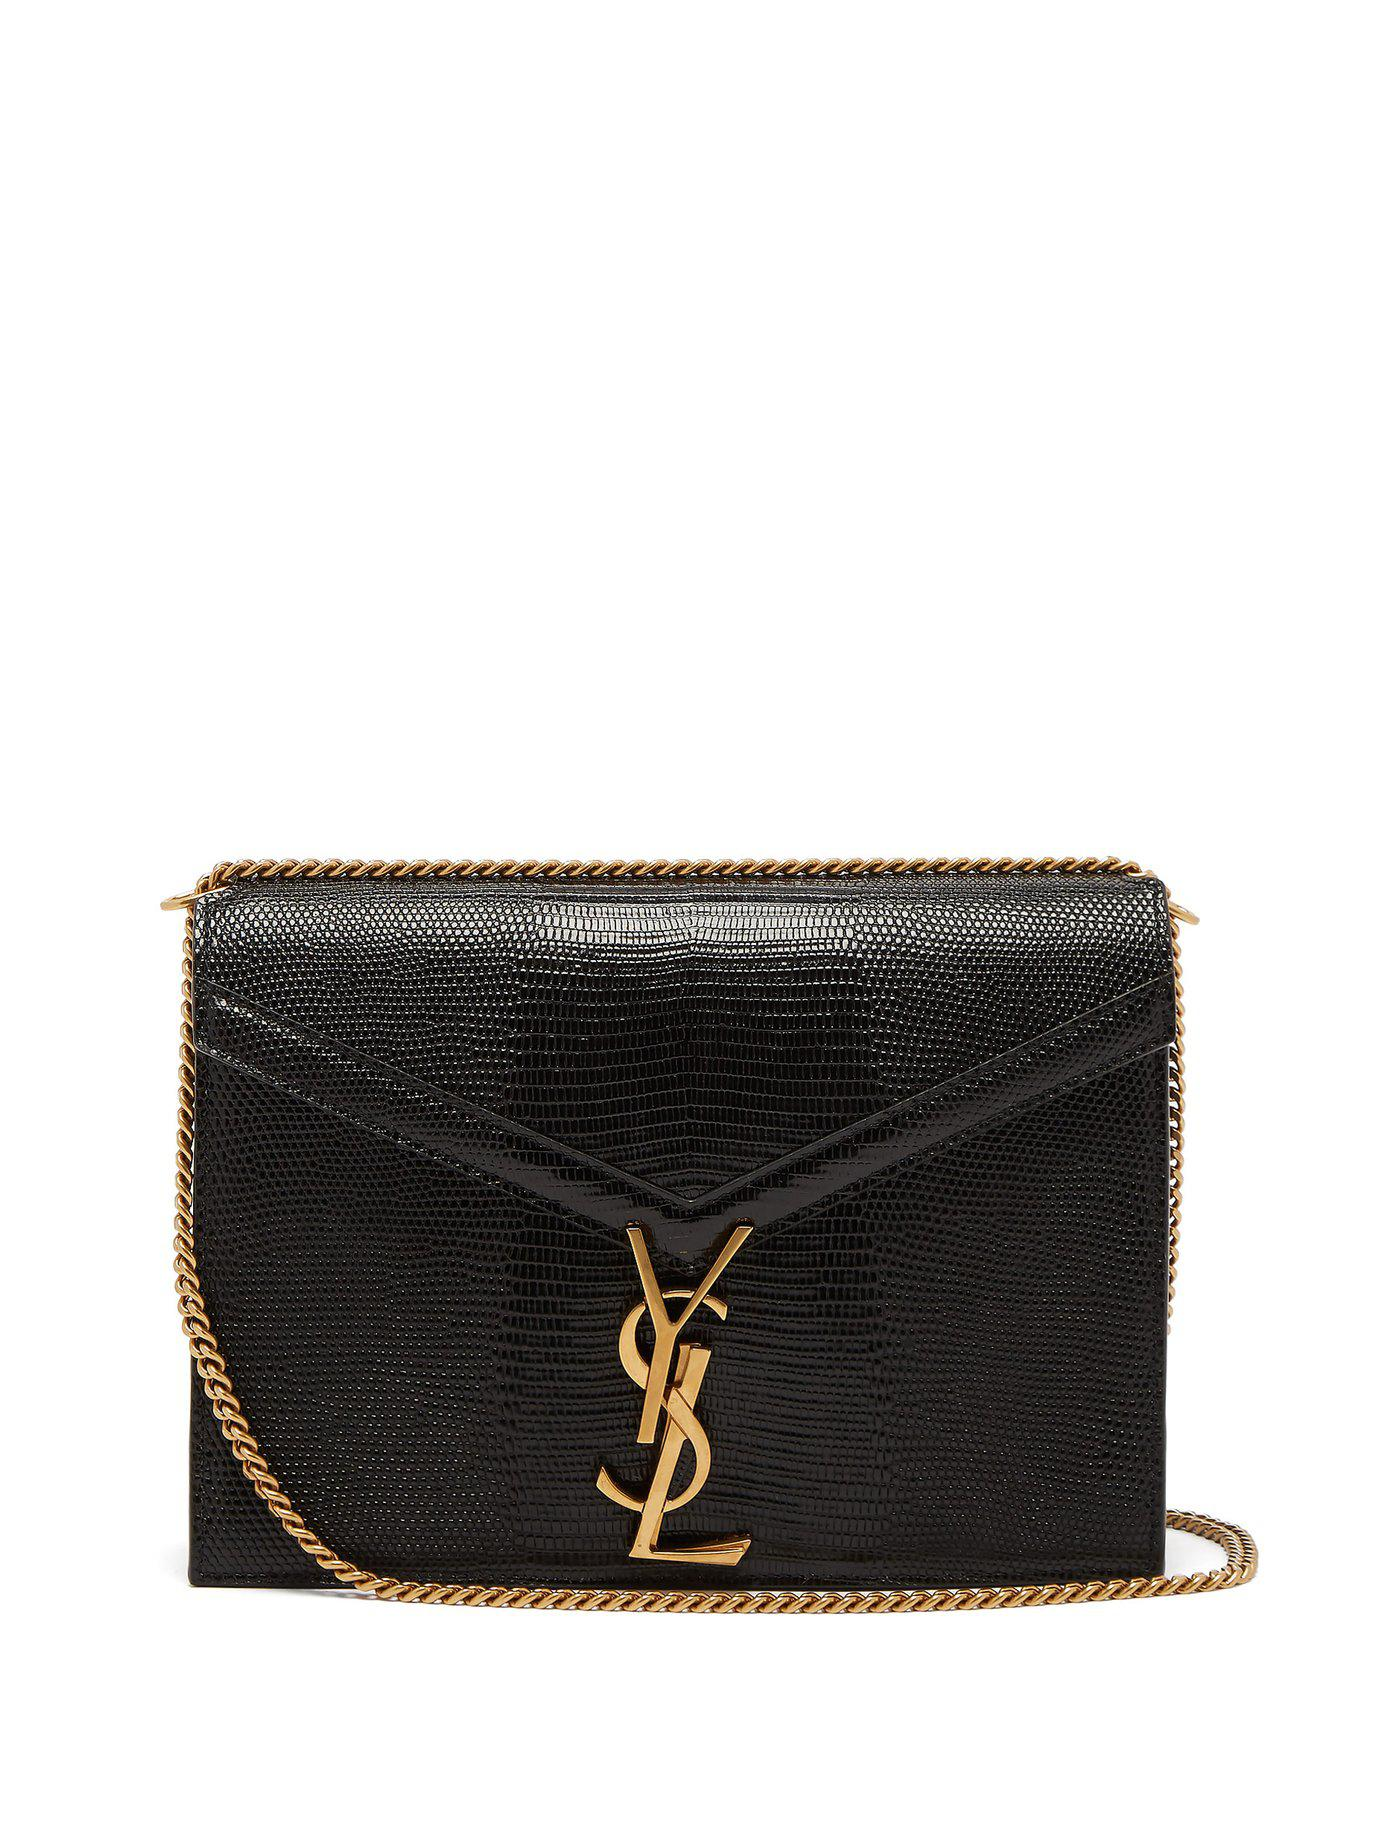 f155a902ef Lyst - Saint Laurent Cassandra Lizard Effect Cross Body Bag in Black